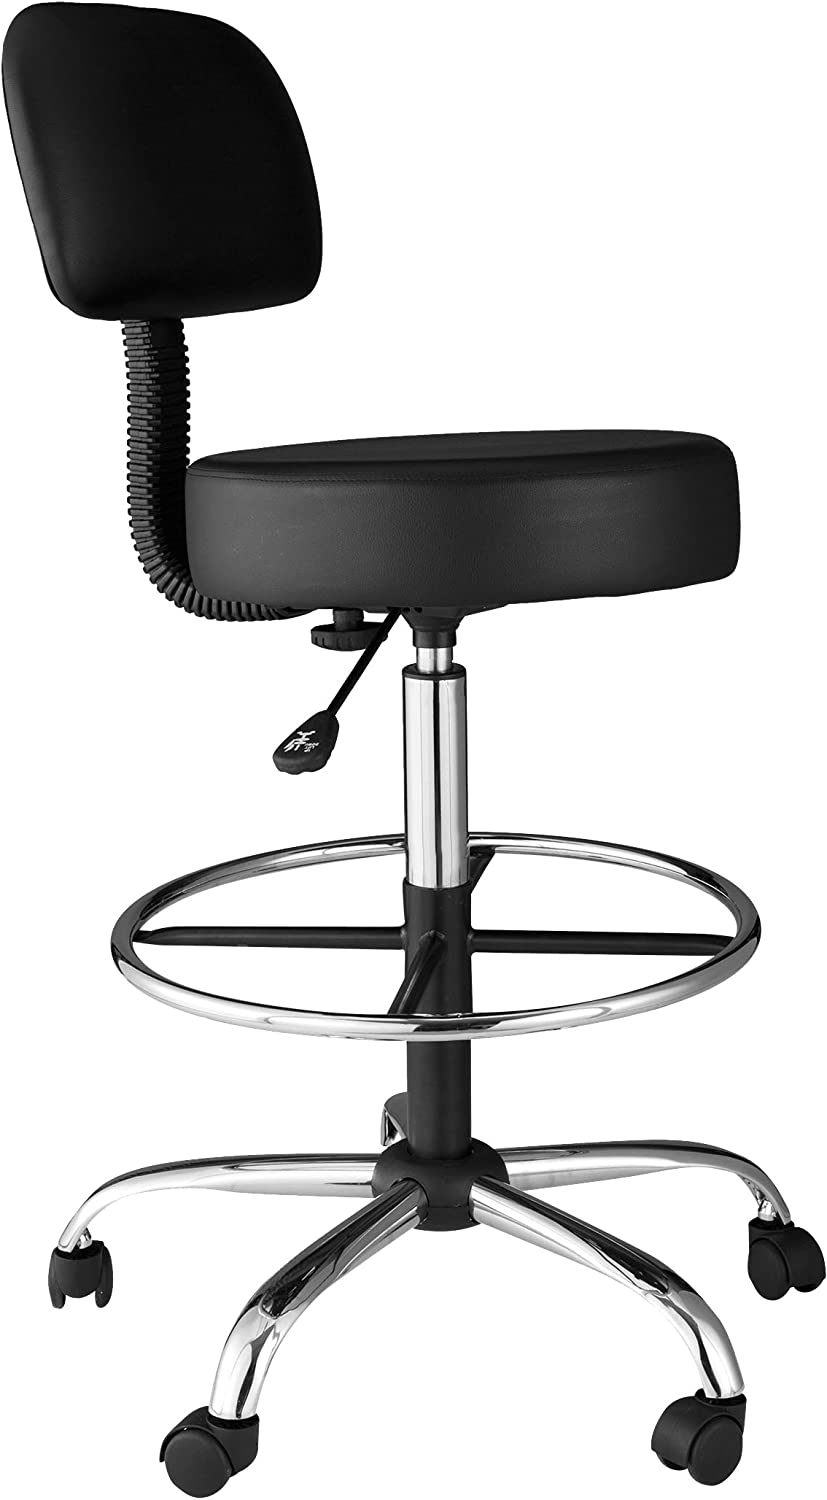 OneSpace 60-1018 Medical Drafting Stool with Back Cushion, Black